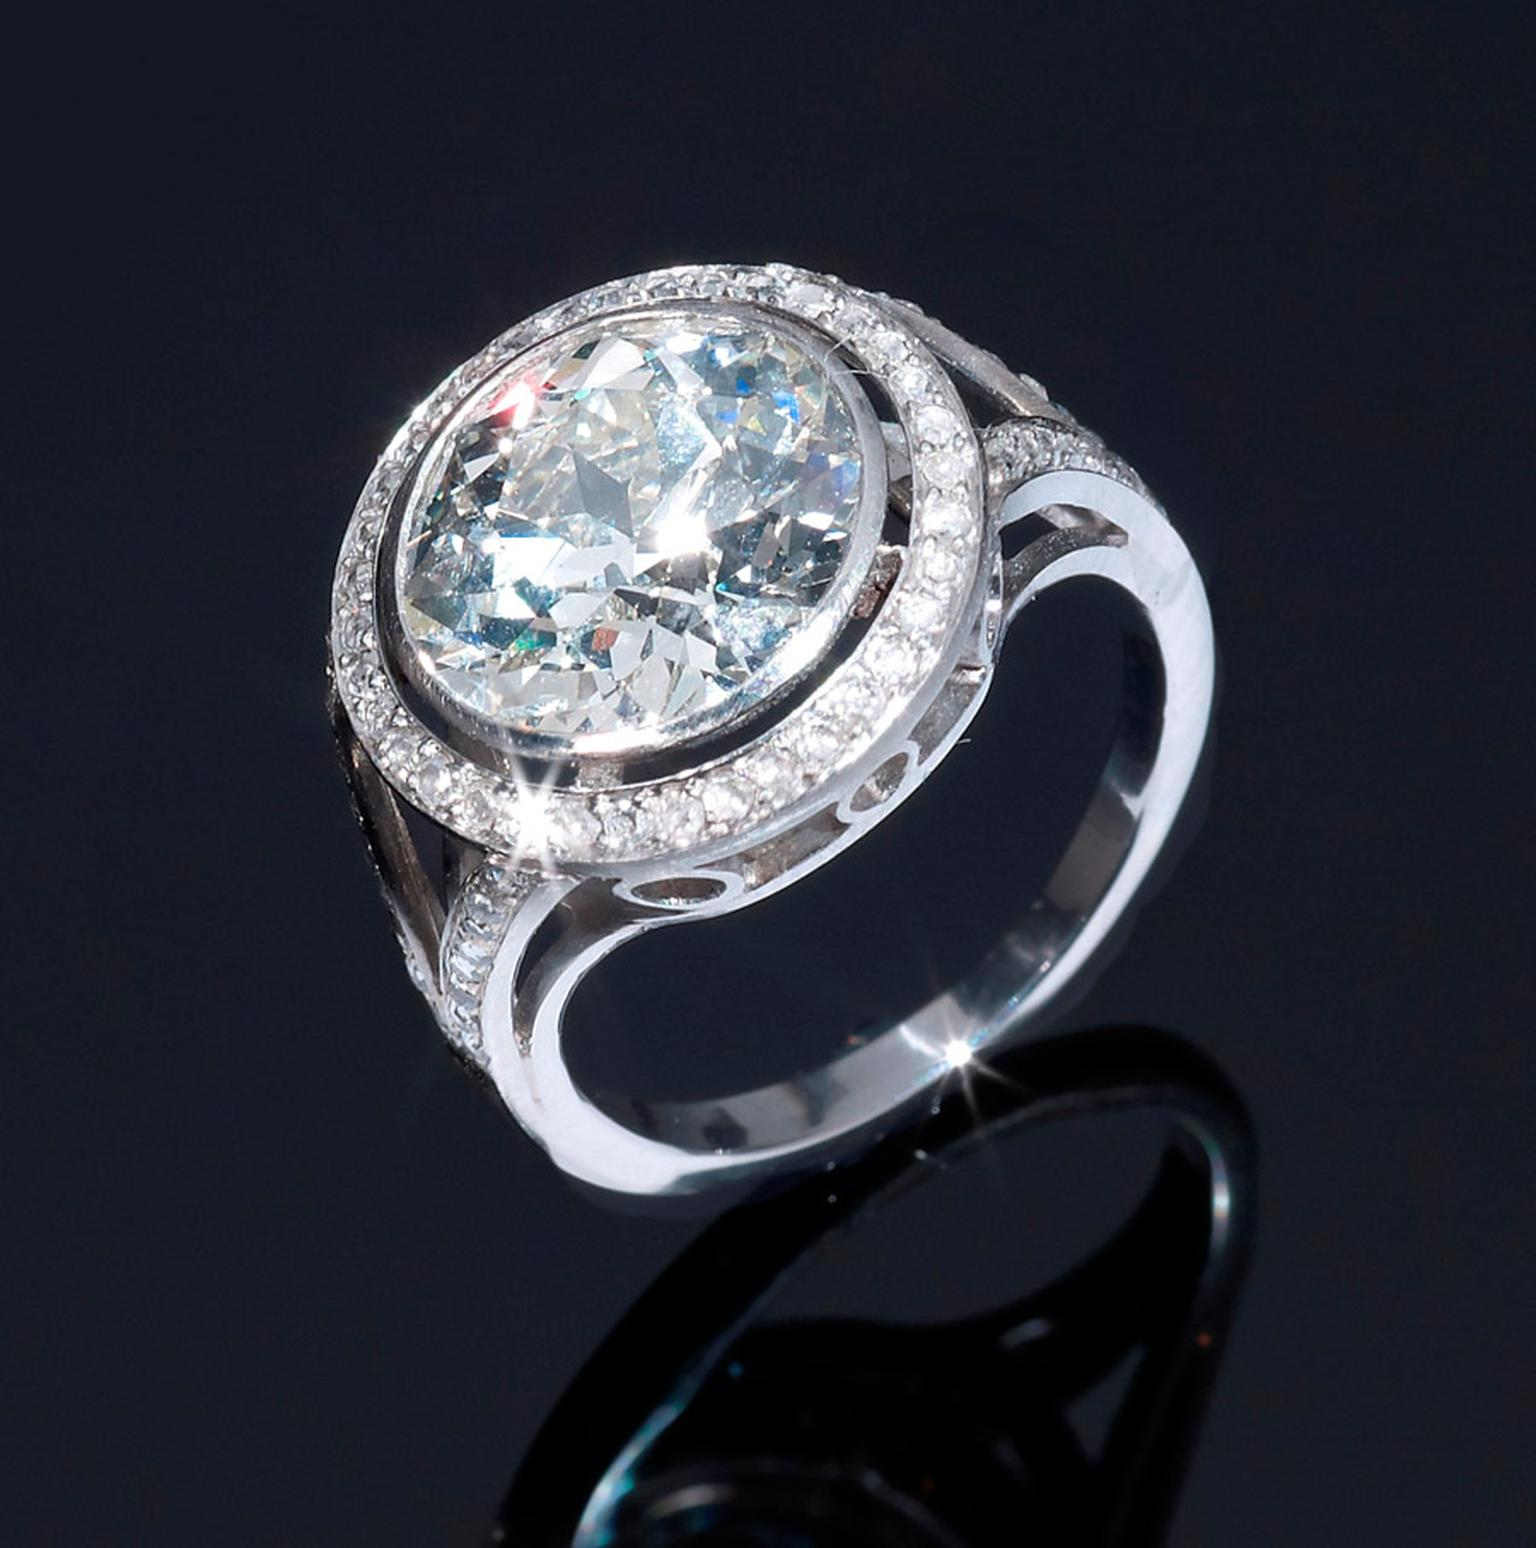 Burlington-Arcade-Hancocks-old-European-brilliant-diamond-ring